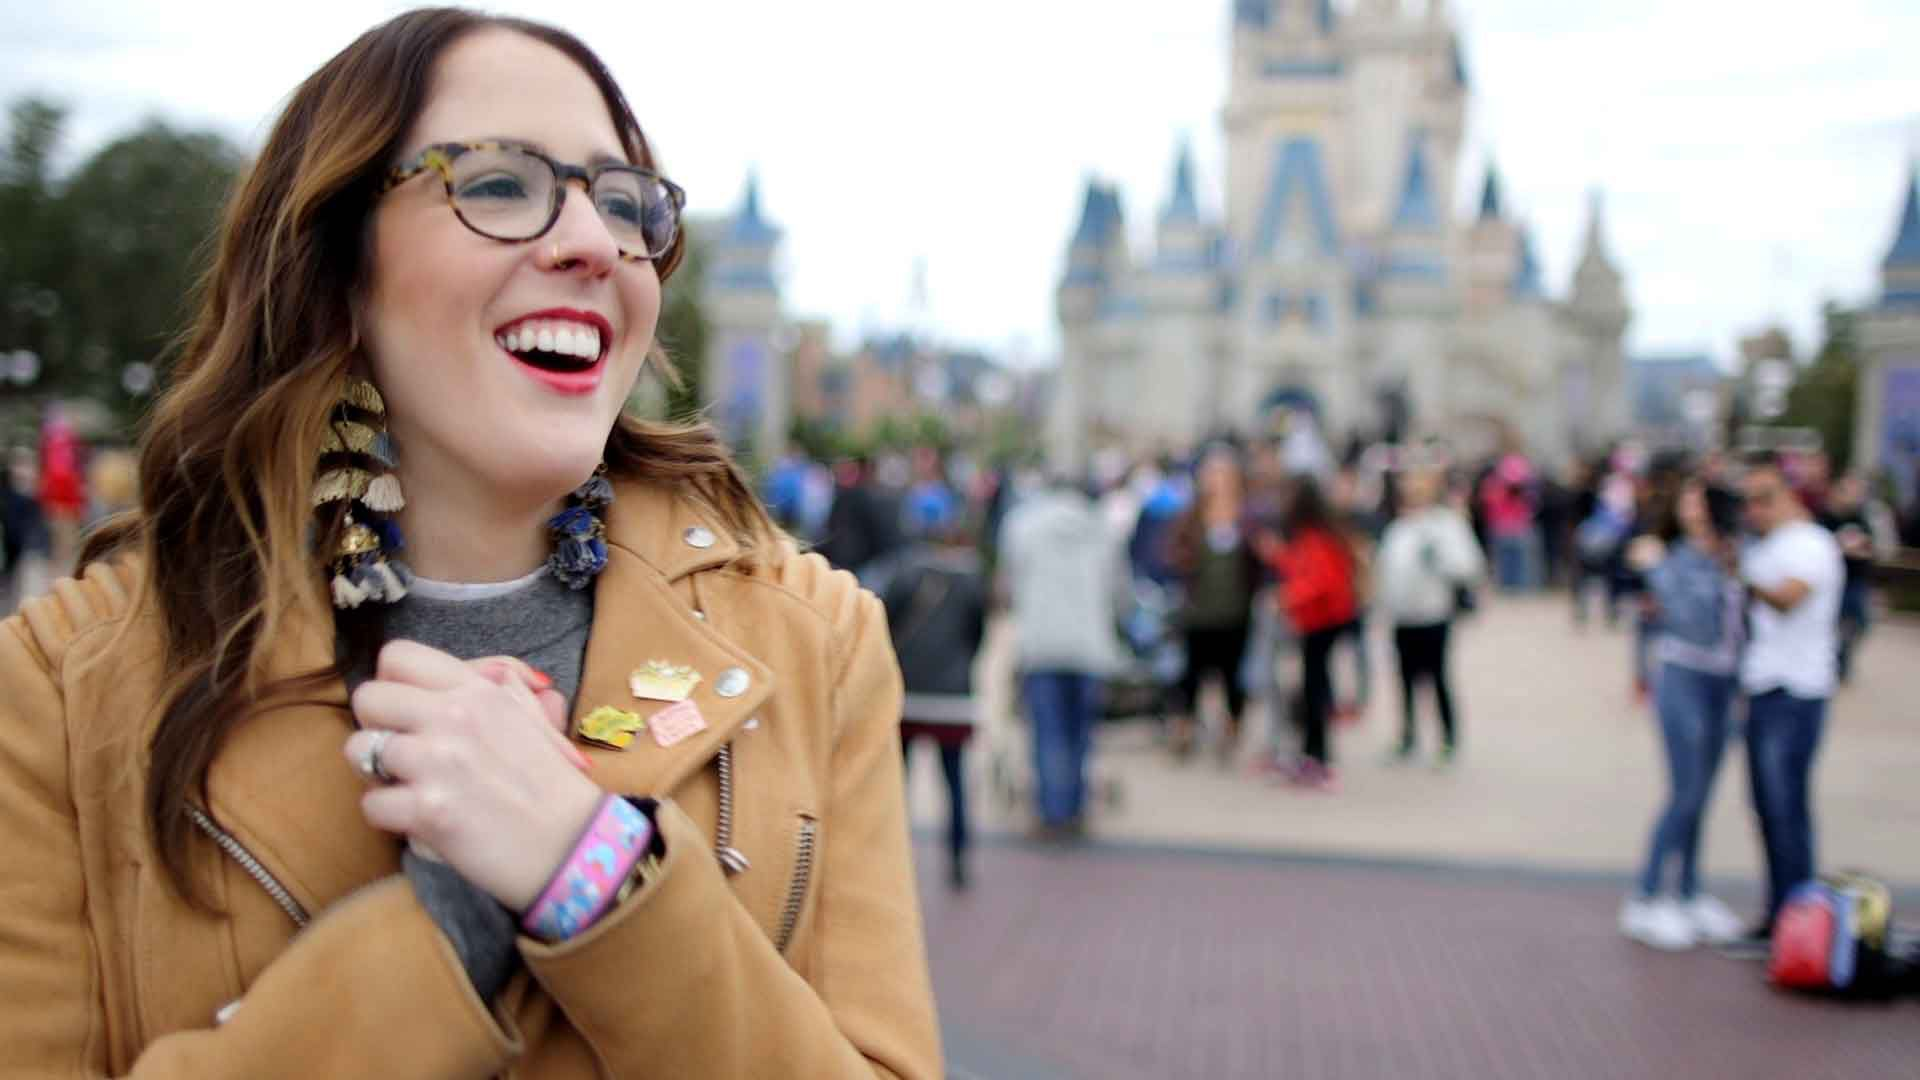 Trailer: Eating Your Way Through Disney World, a Multi-Part Series